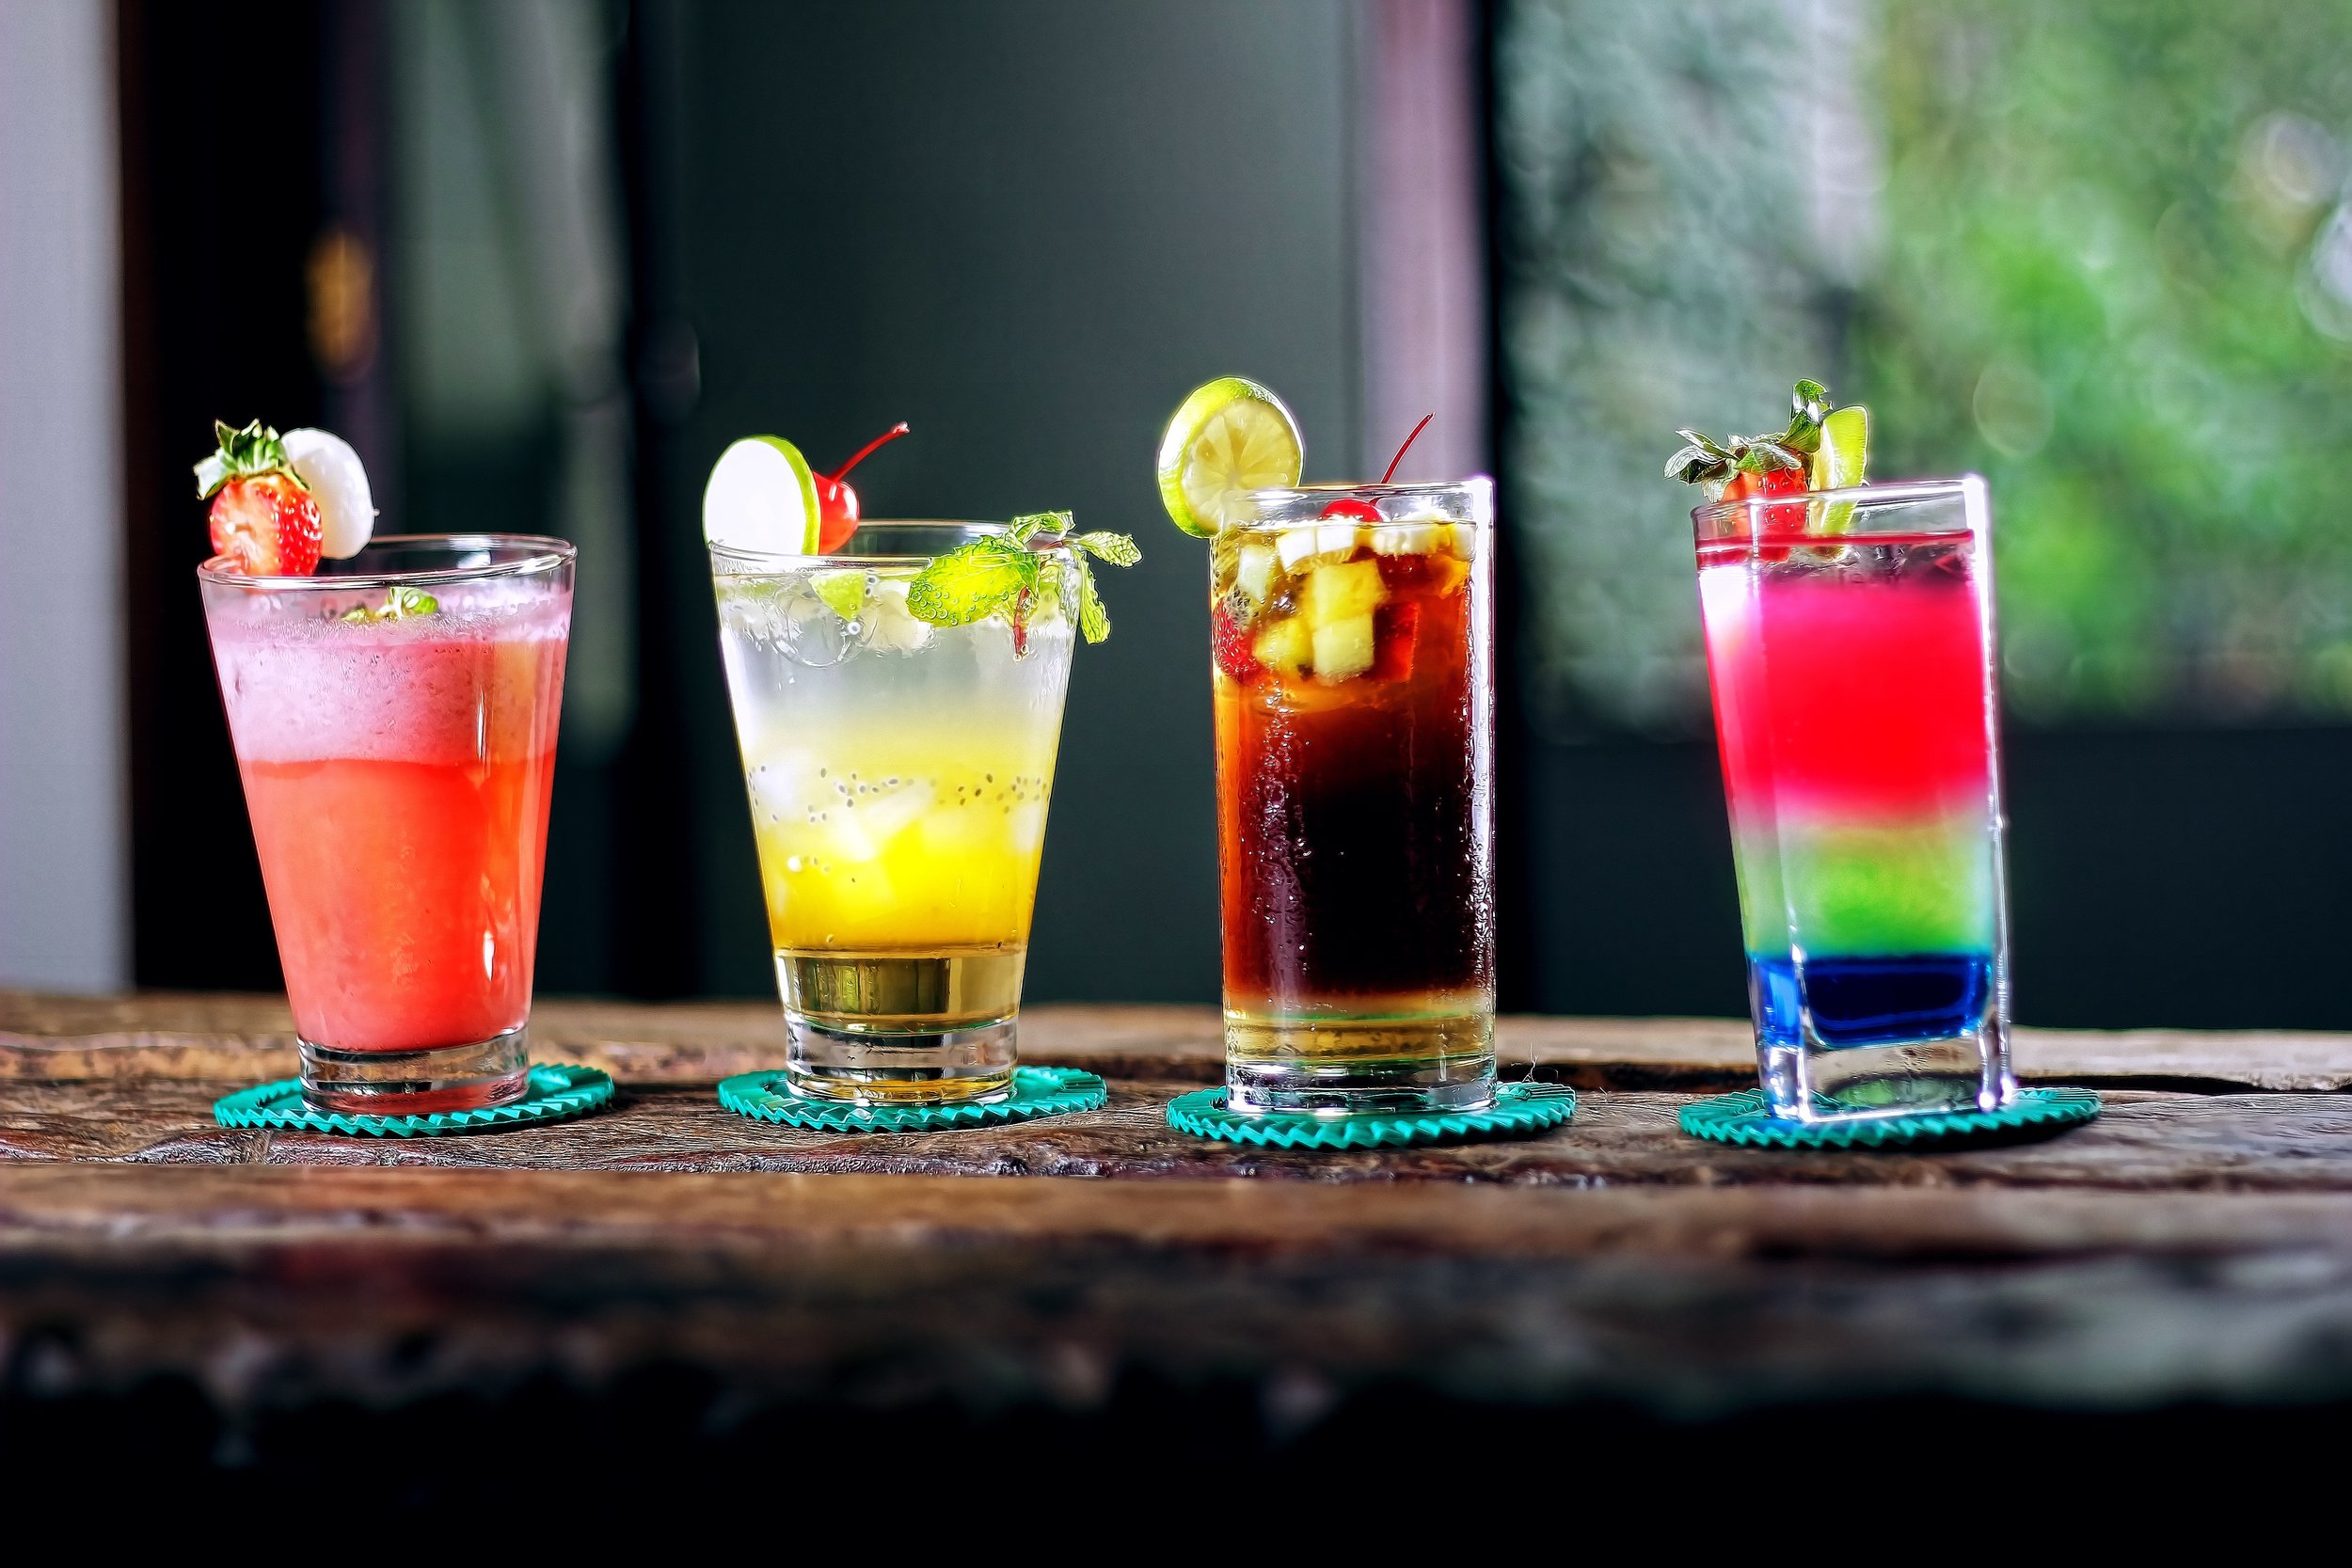 alcoholic-beverages-bar-beverage-605408.jpg